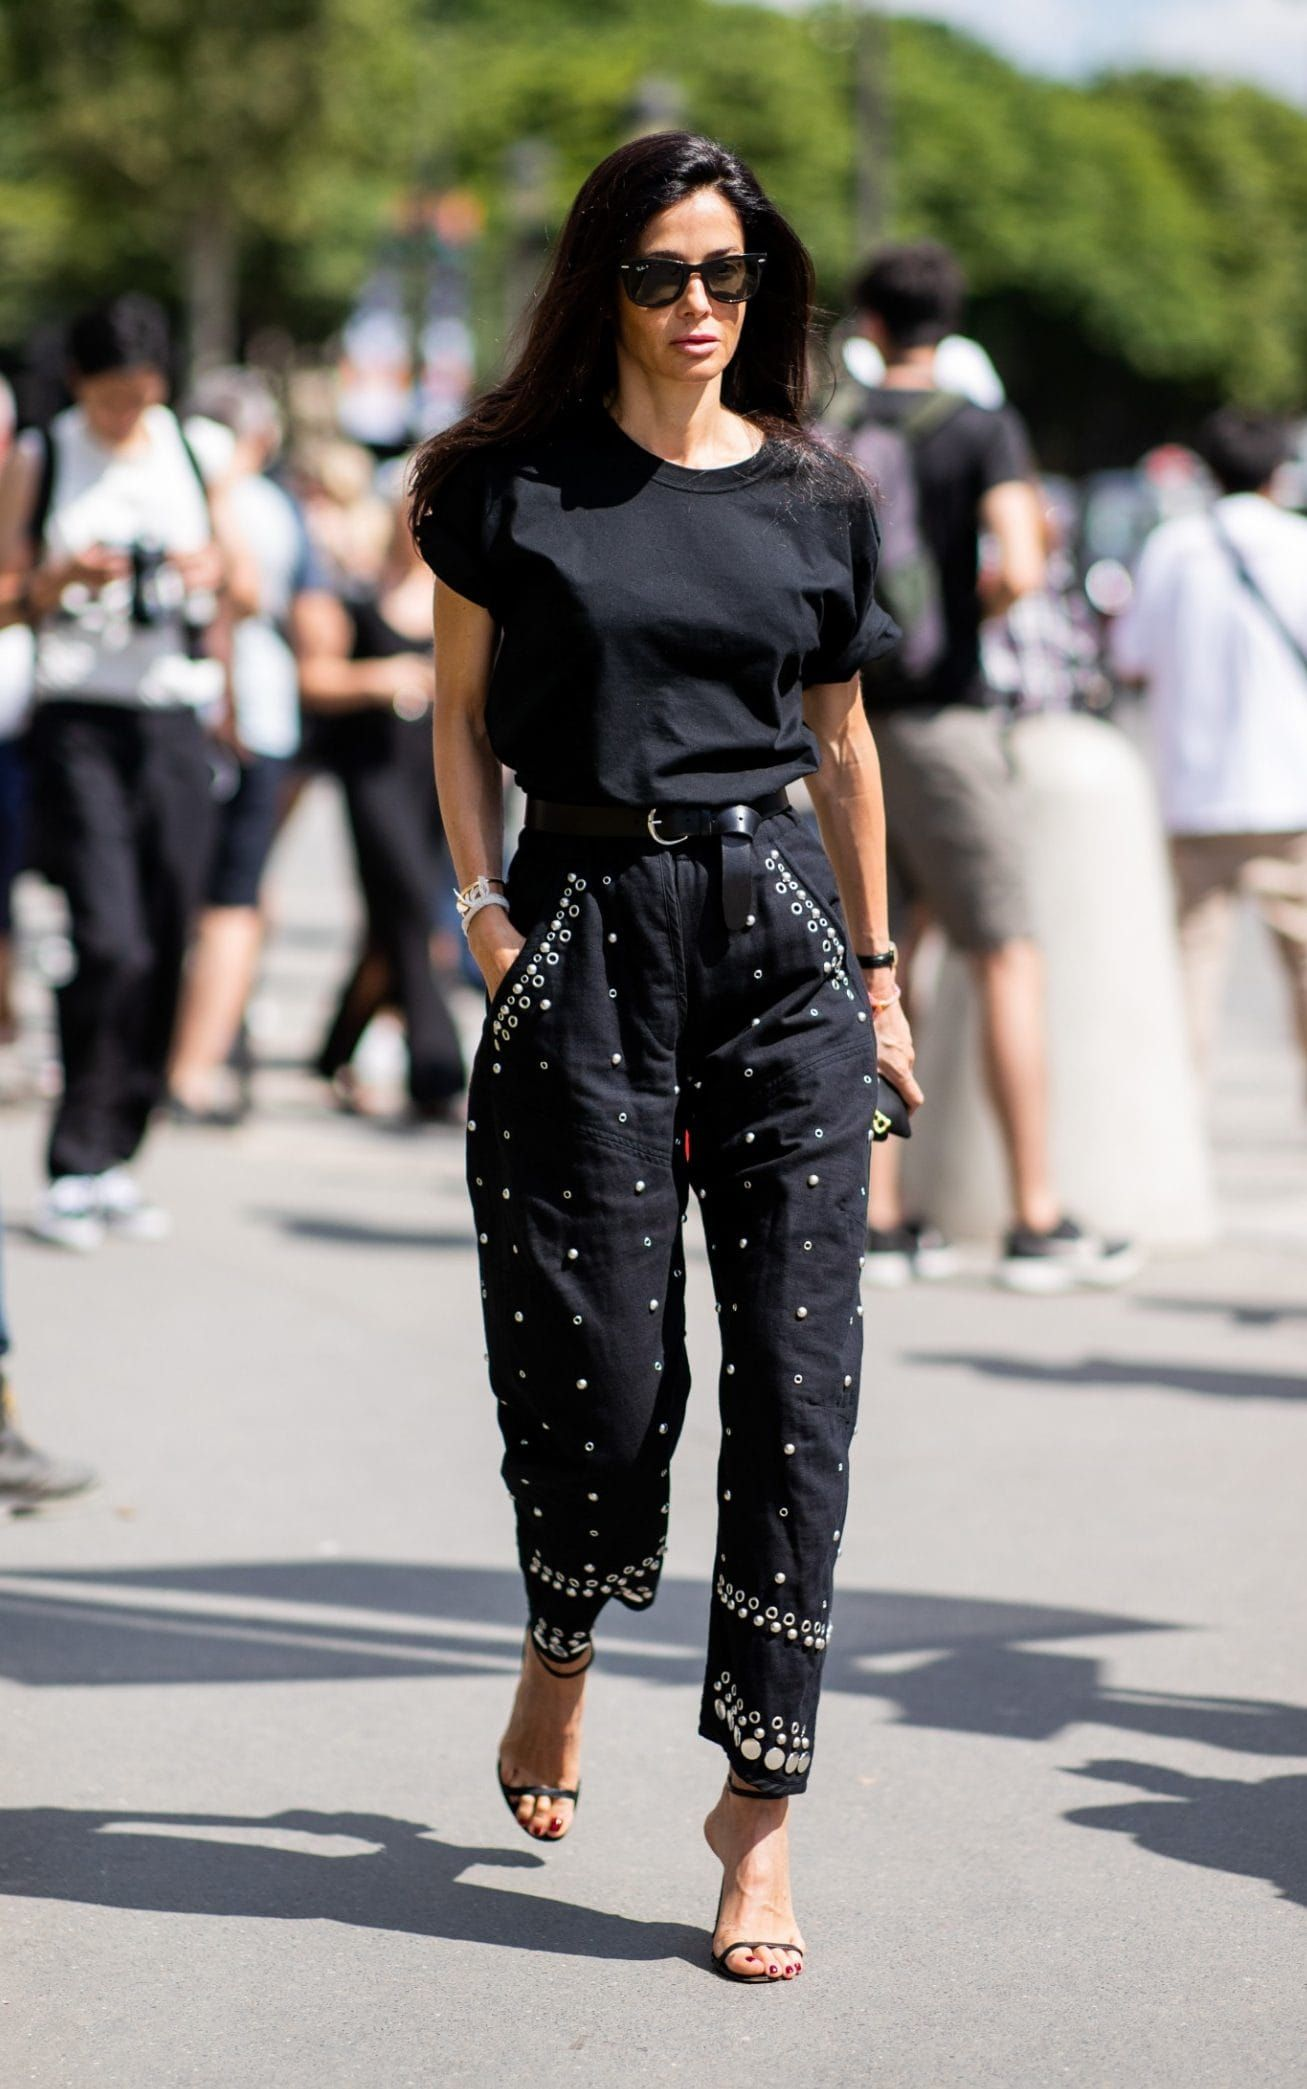 The chicest street style looks from Paris Haute Couture fashion week